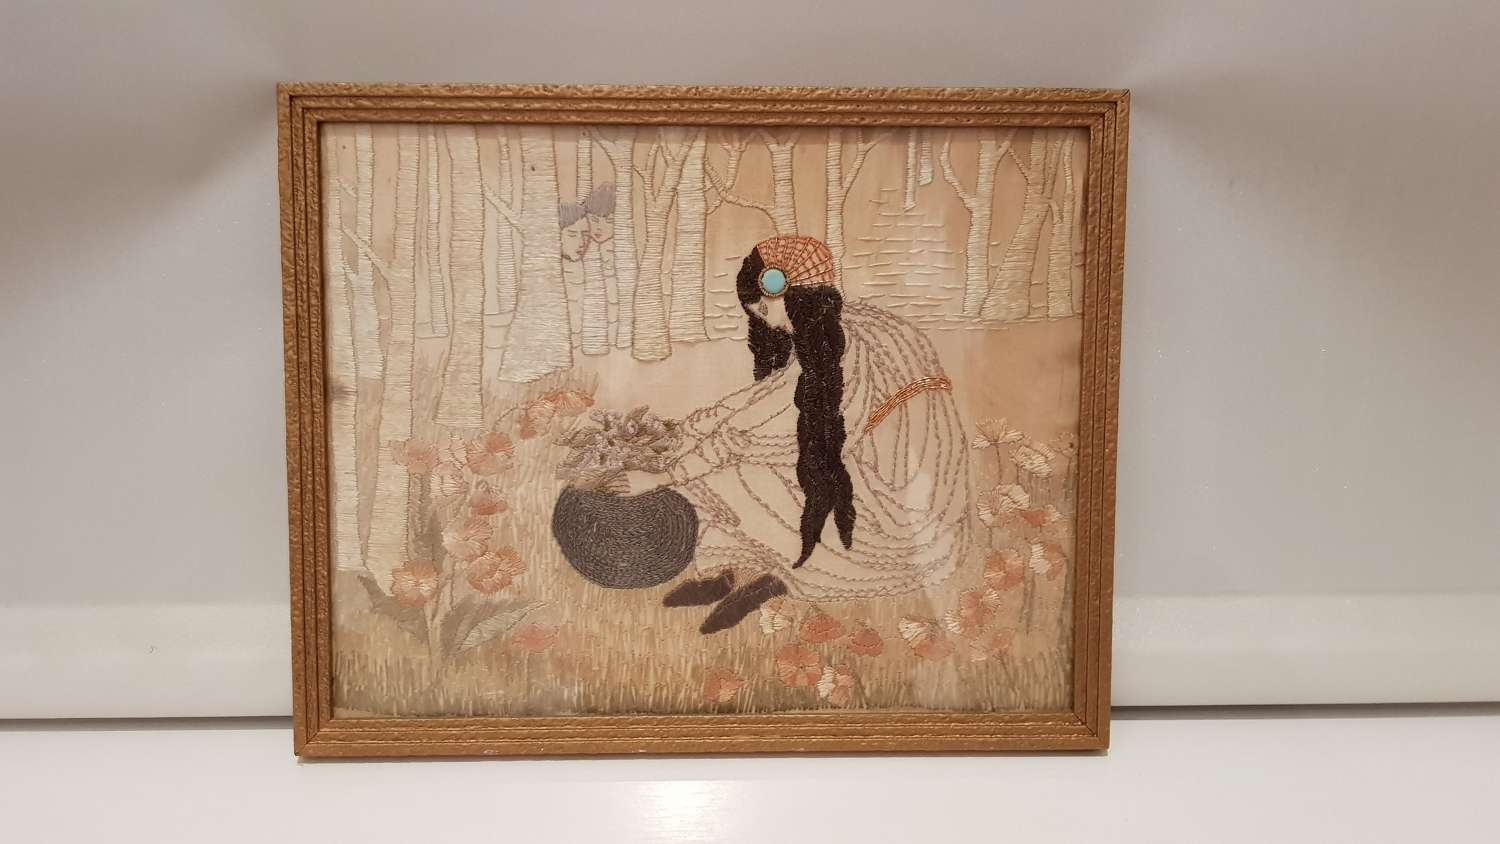 Glasgow Style Arts & Crafts embroidered panel manner of JM King